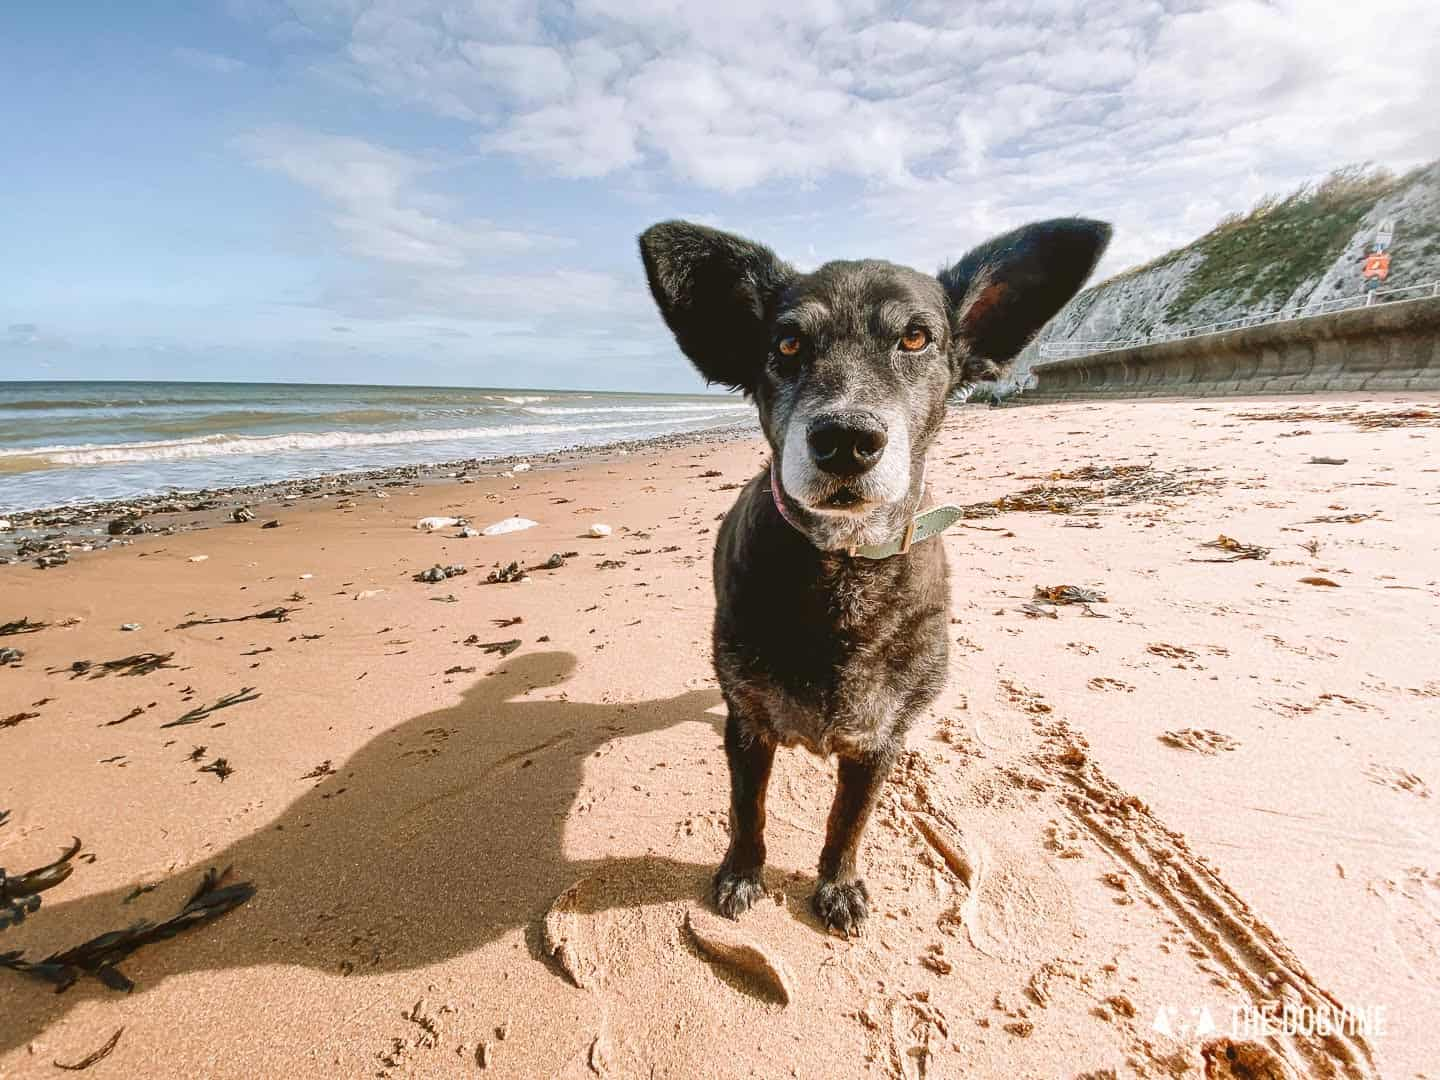 Dumpton Gap welcomes dogs on the beach all year round